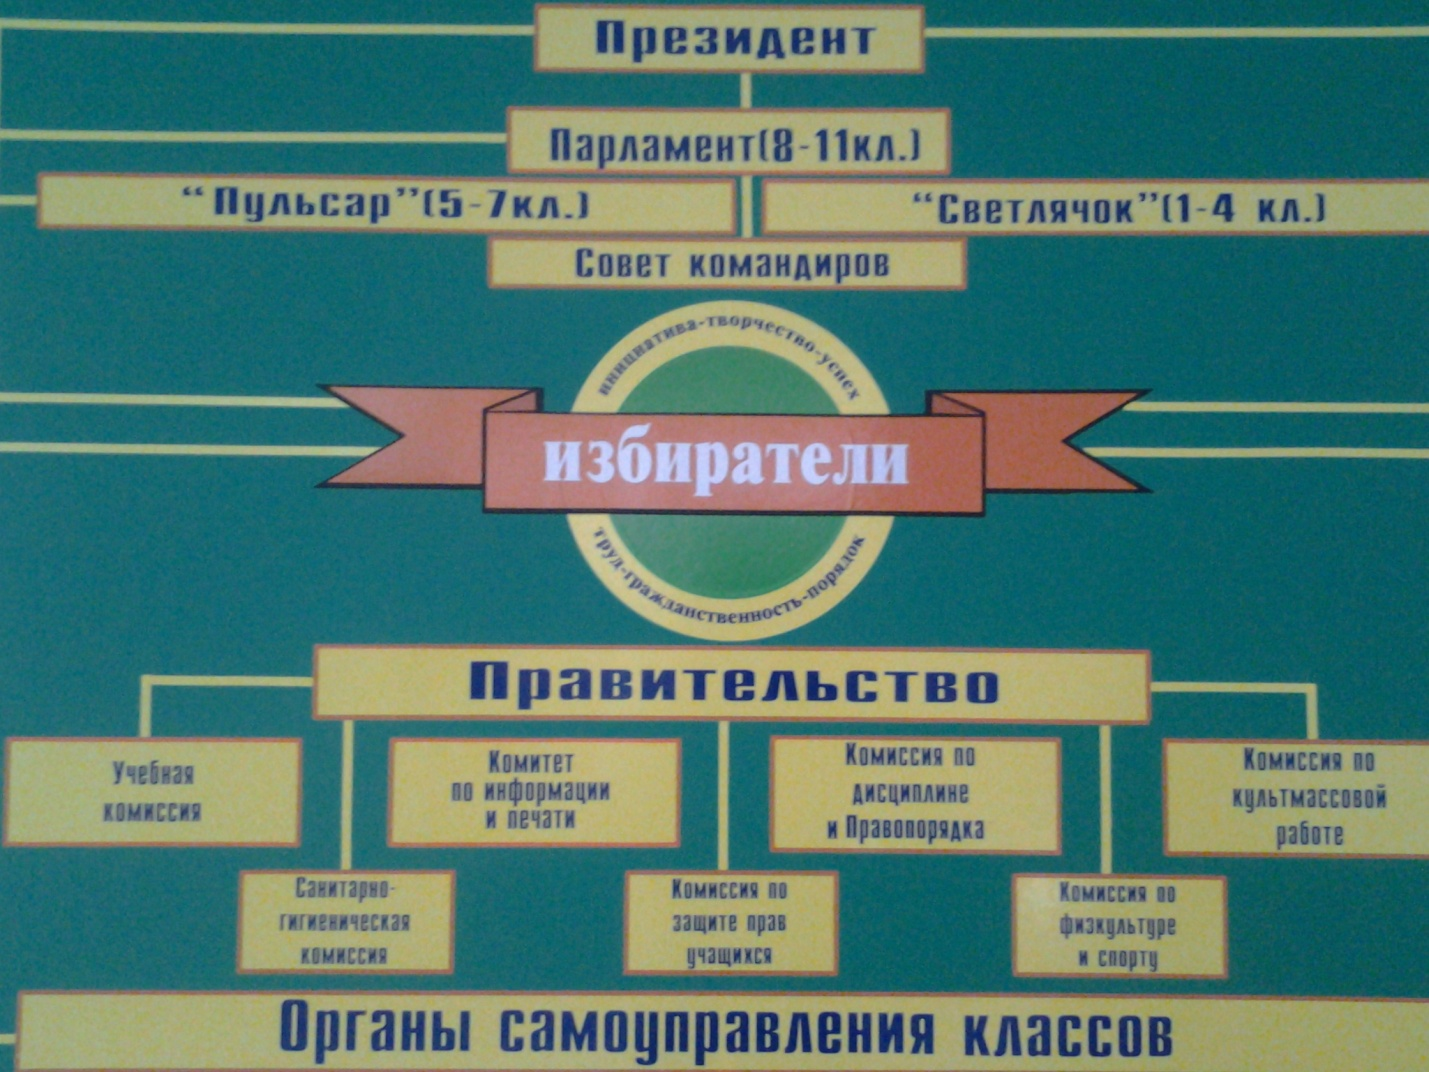 C:\Documents and Settings\Admin\Рабочий стол\20131012_120443.jpg